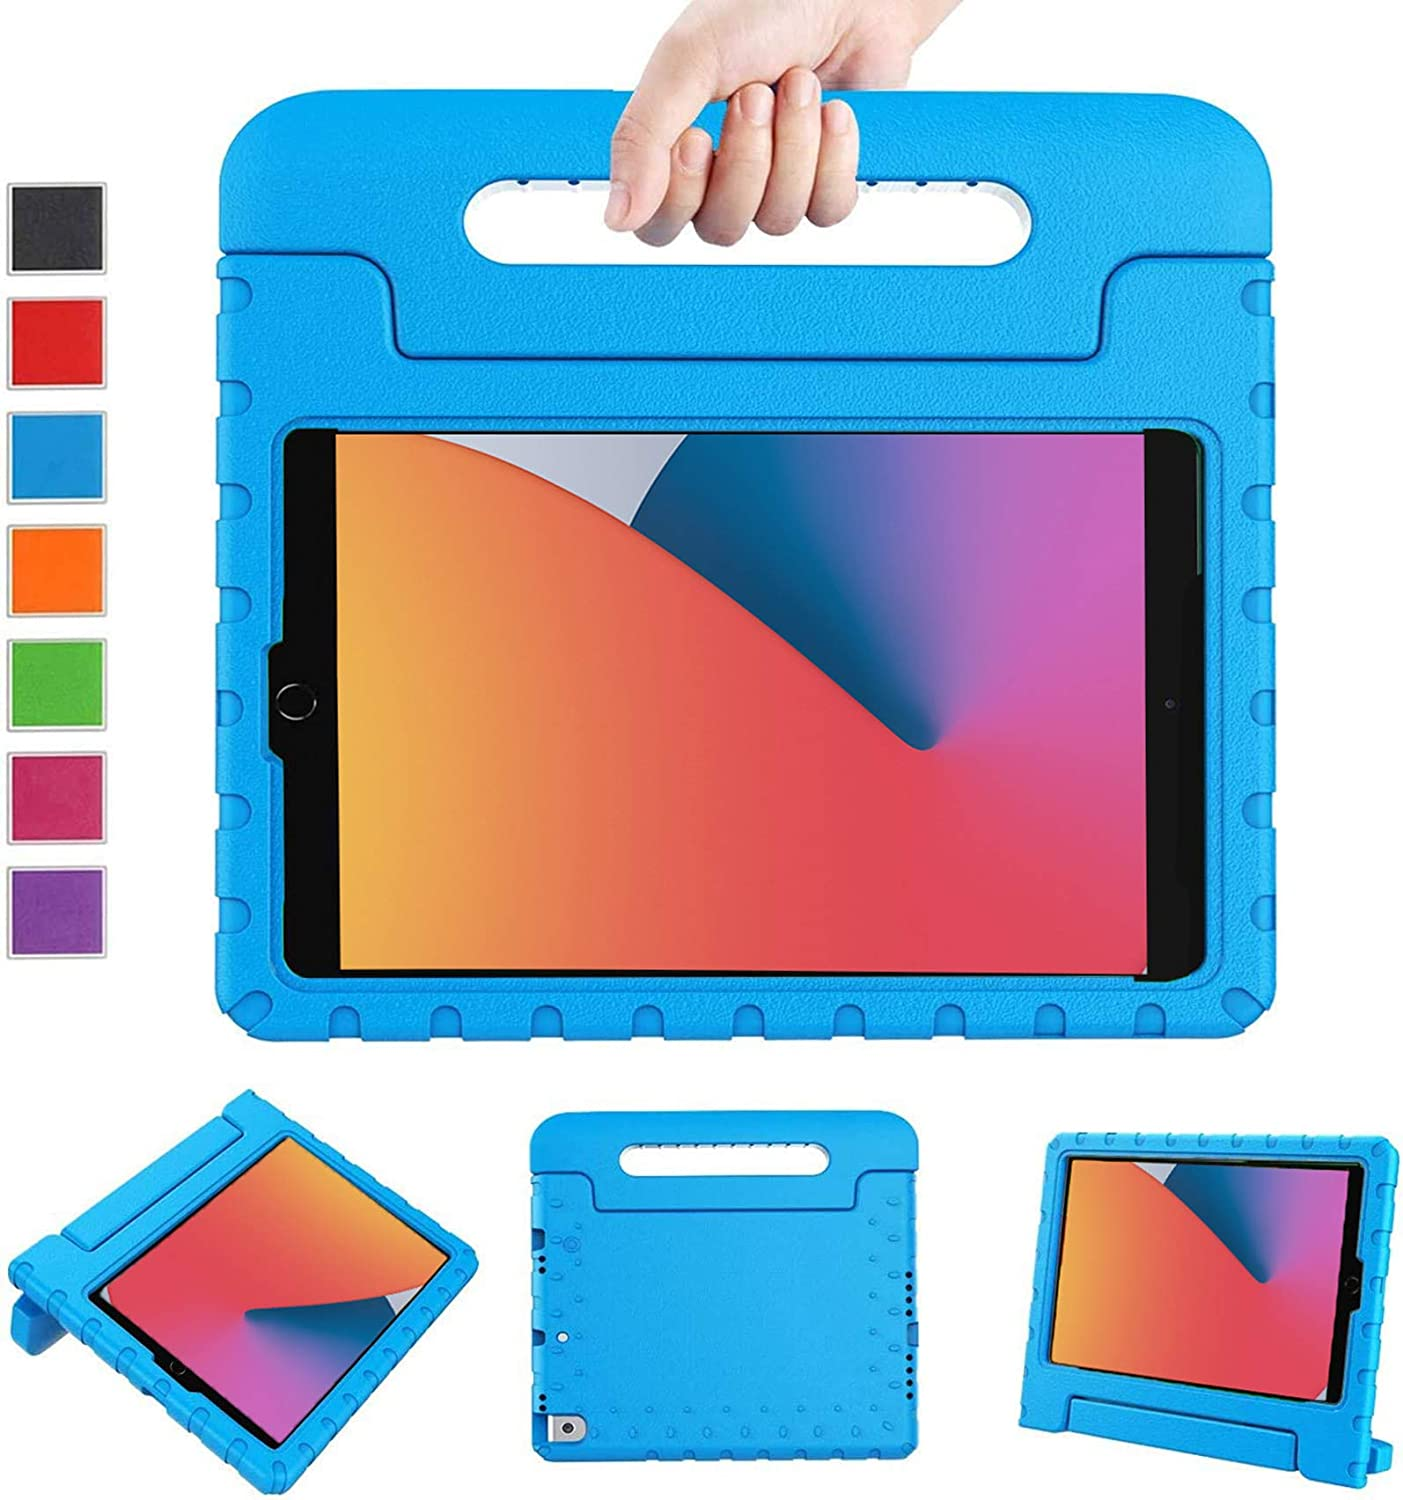 LTROP New iPad 8th Generation Case, iPad 10.2 Case, iPad 7th Generation Case for Kids, iPad 10.2 2020 Kids Case Shockproof Light Weight Handle Stand Case for iPad 8th/ 7th Gen 10.2